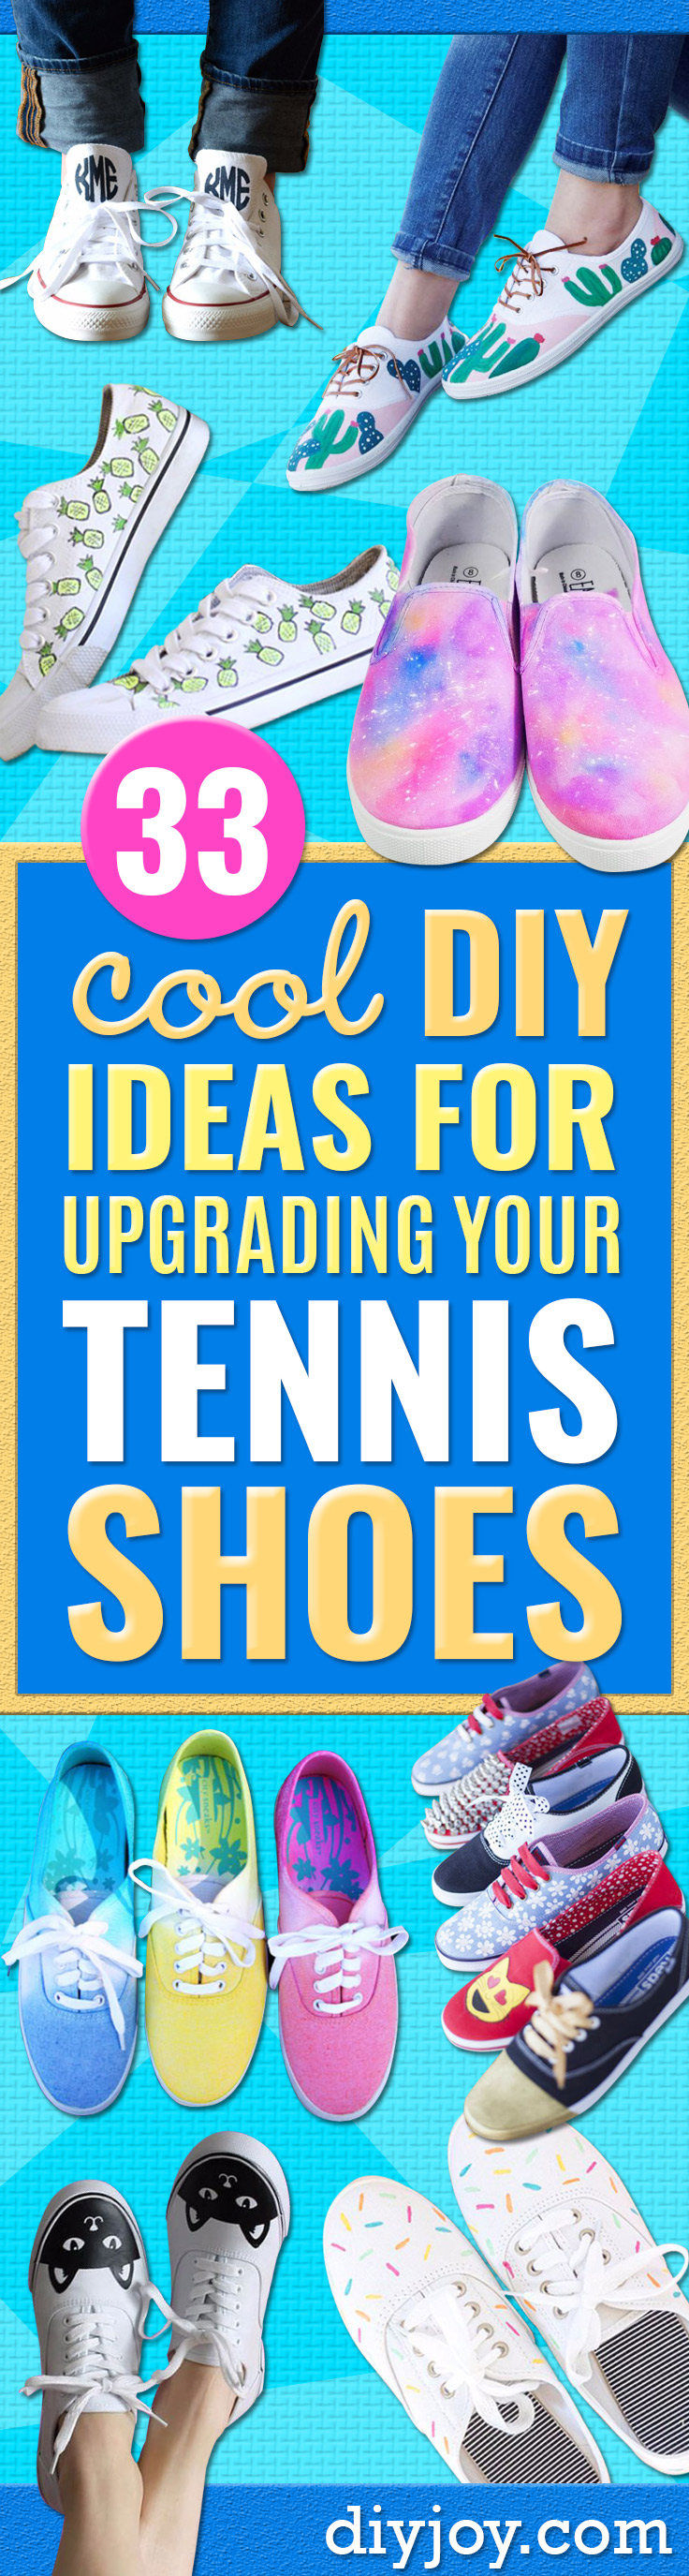 ccc8b5cff224 33 DIY Ideas for Upgrading Your Tennis Shoes